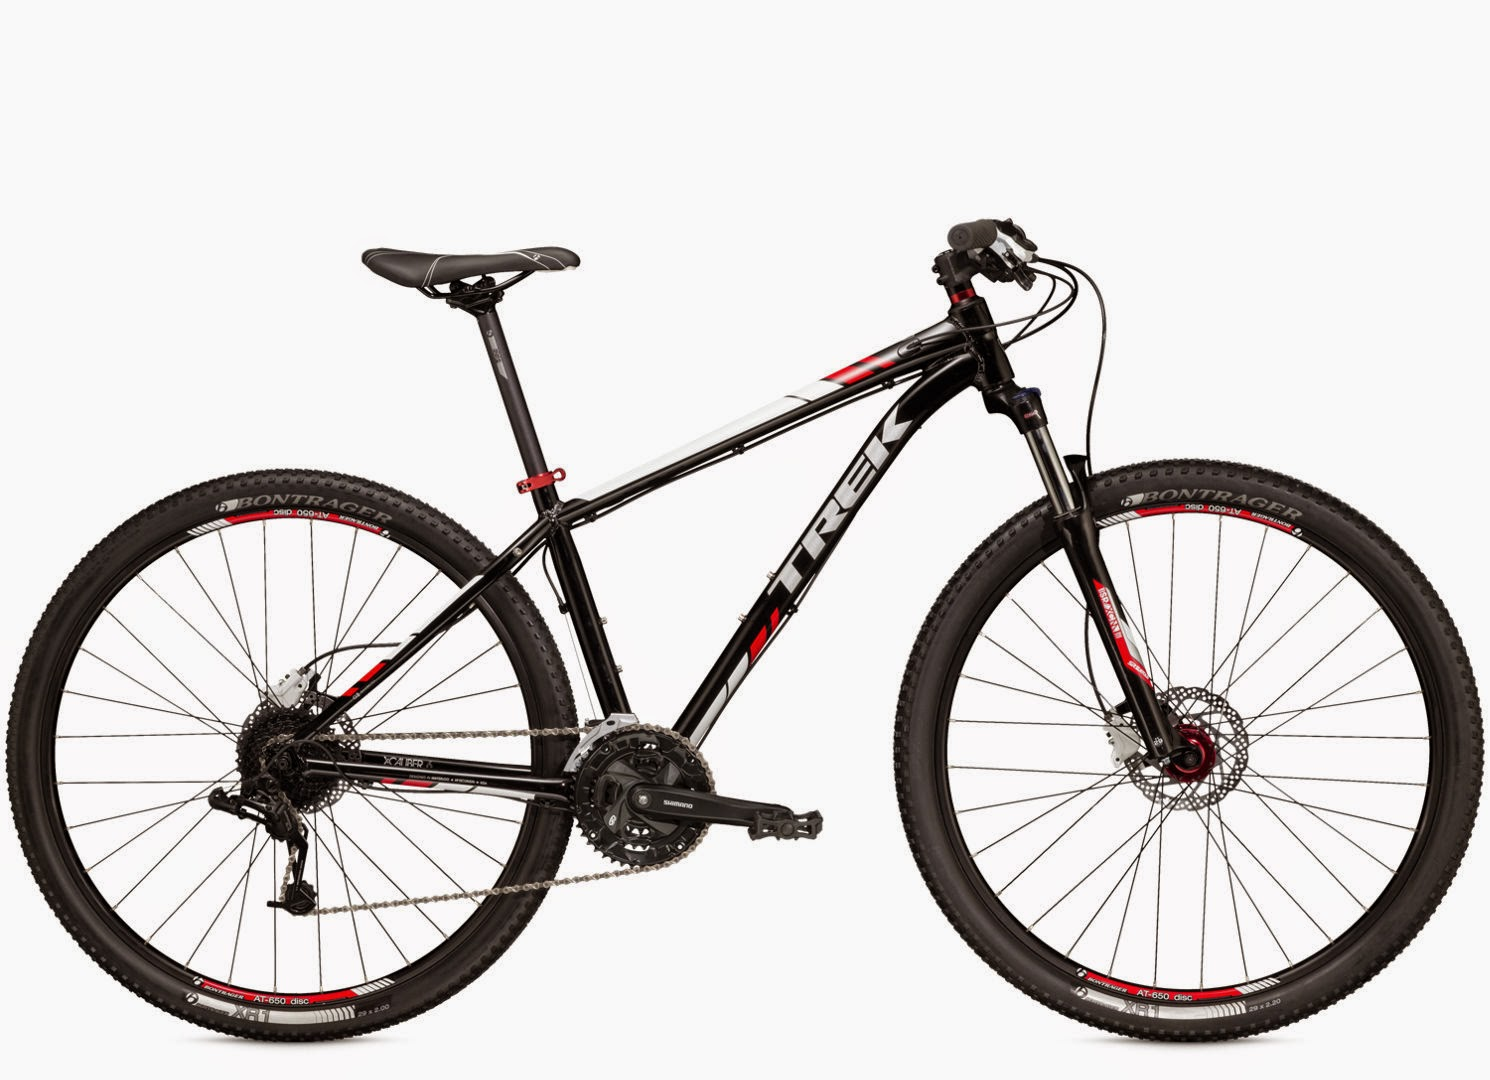 e1d7d0fa17b 2015 Trek X-Caliber 6 Is Packed With Features and Looks Great!